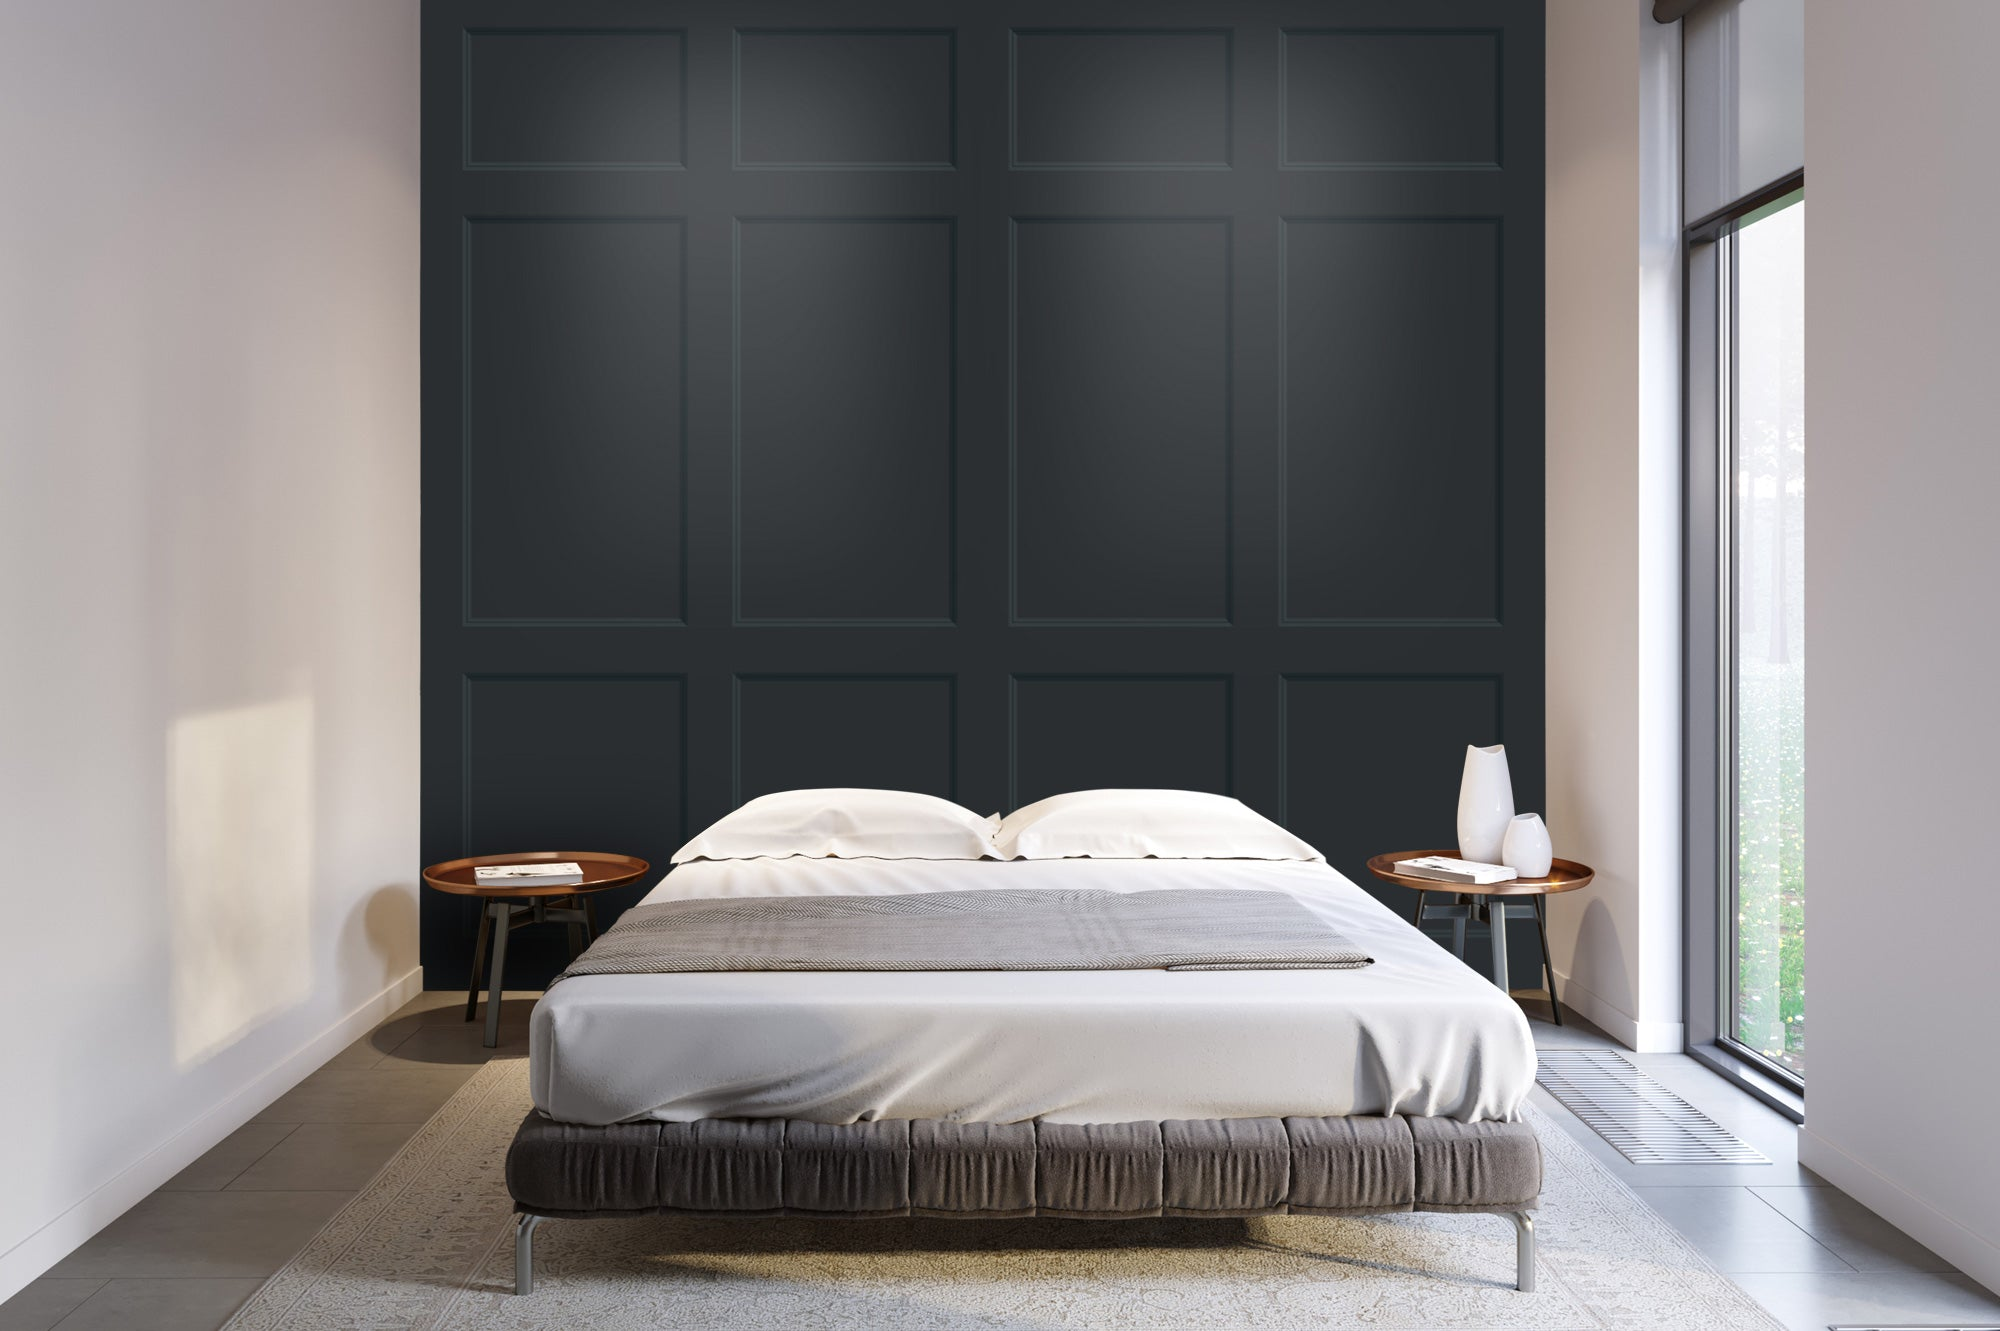 Avingdon Wall Panel bed